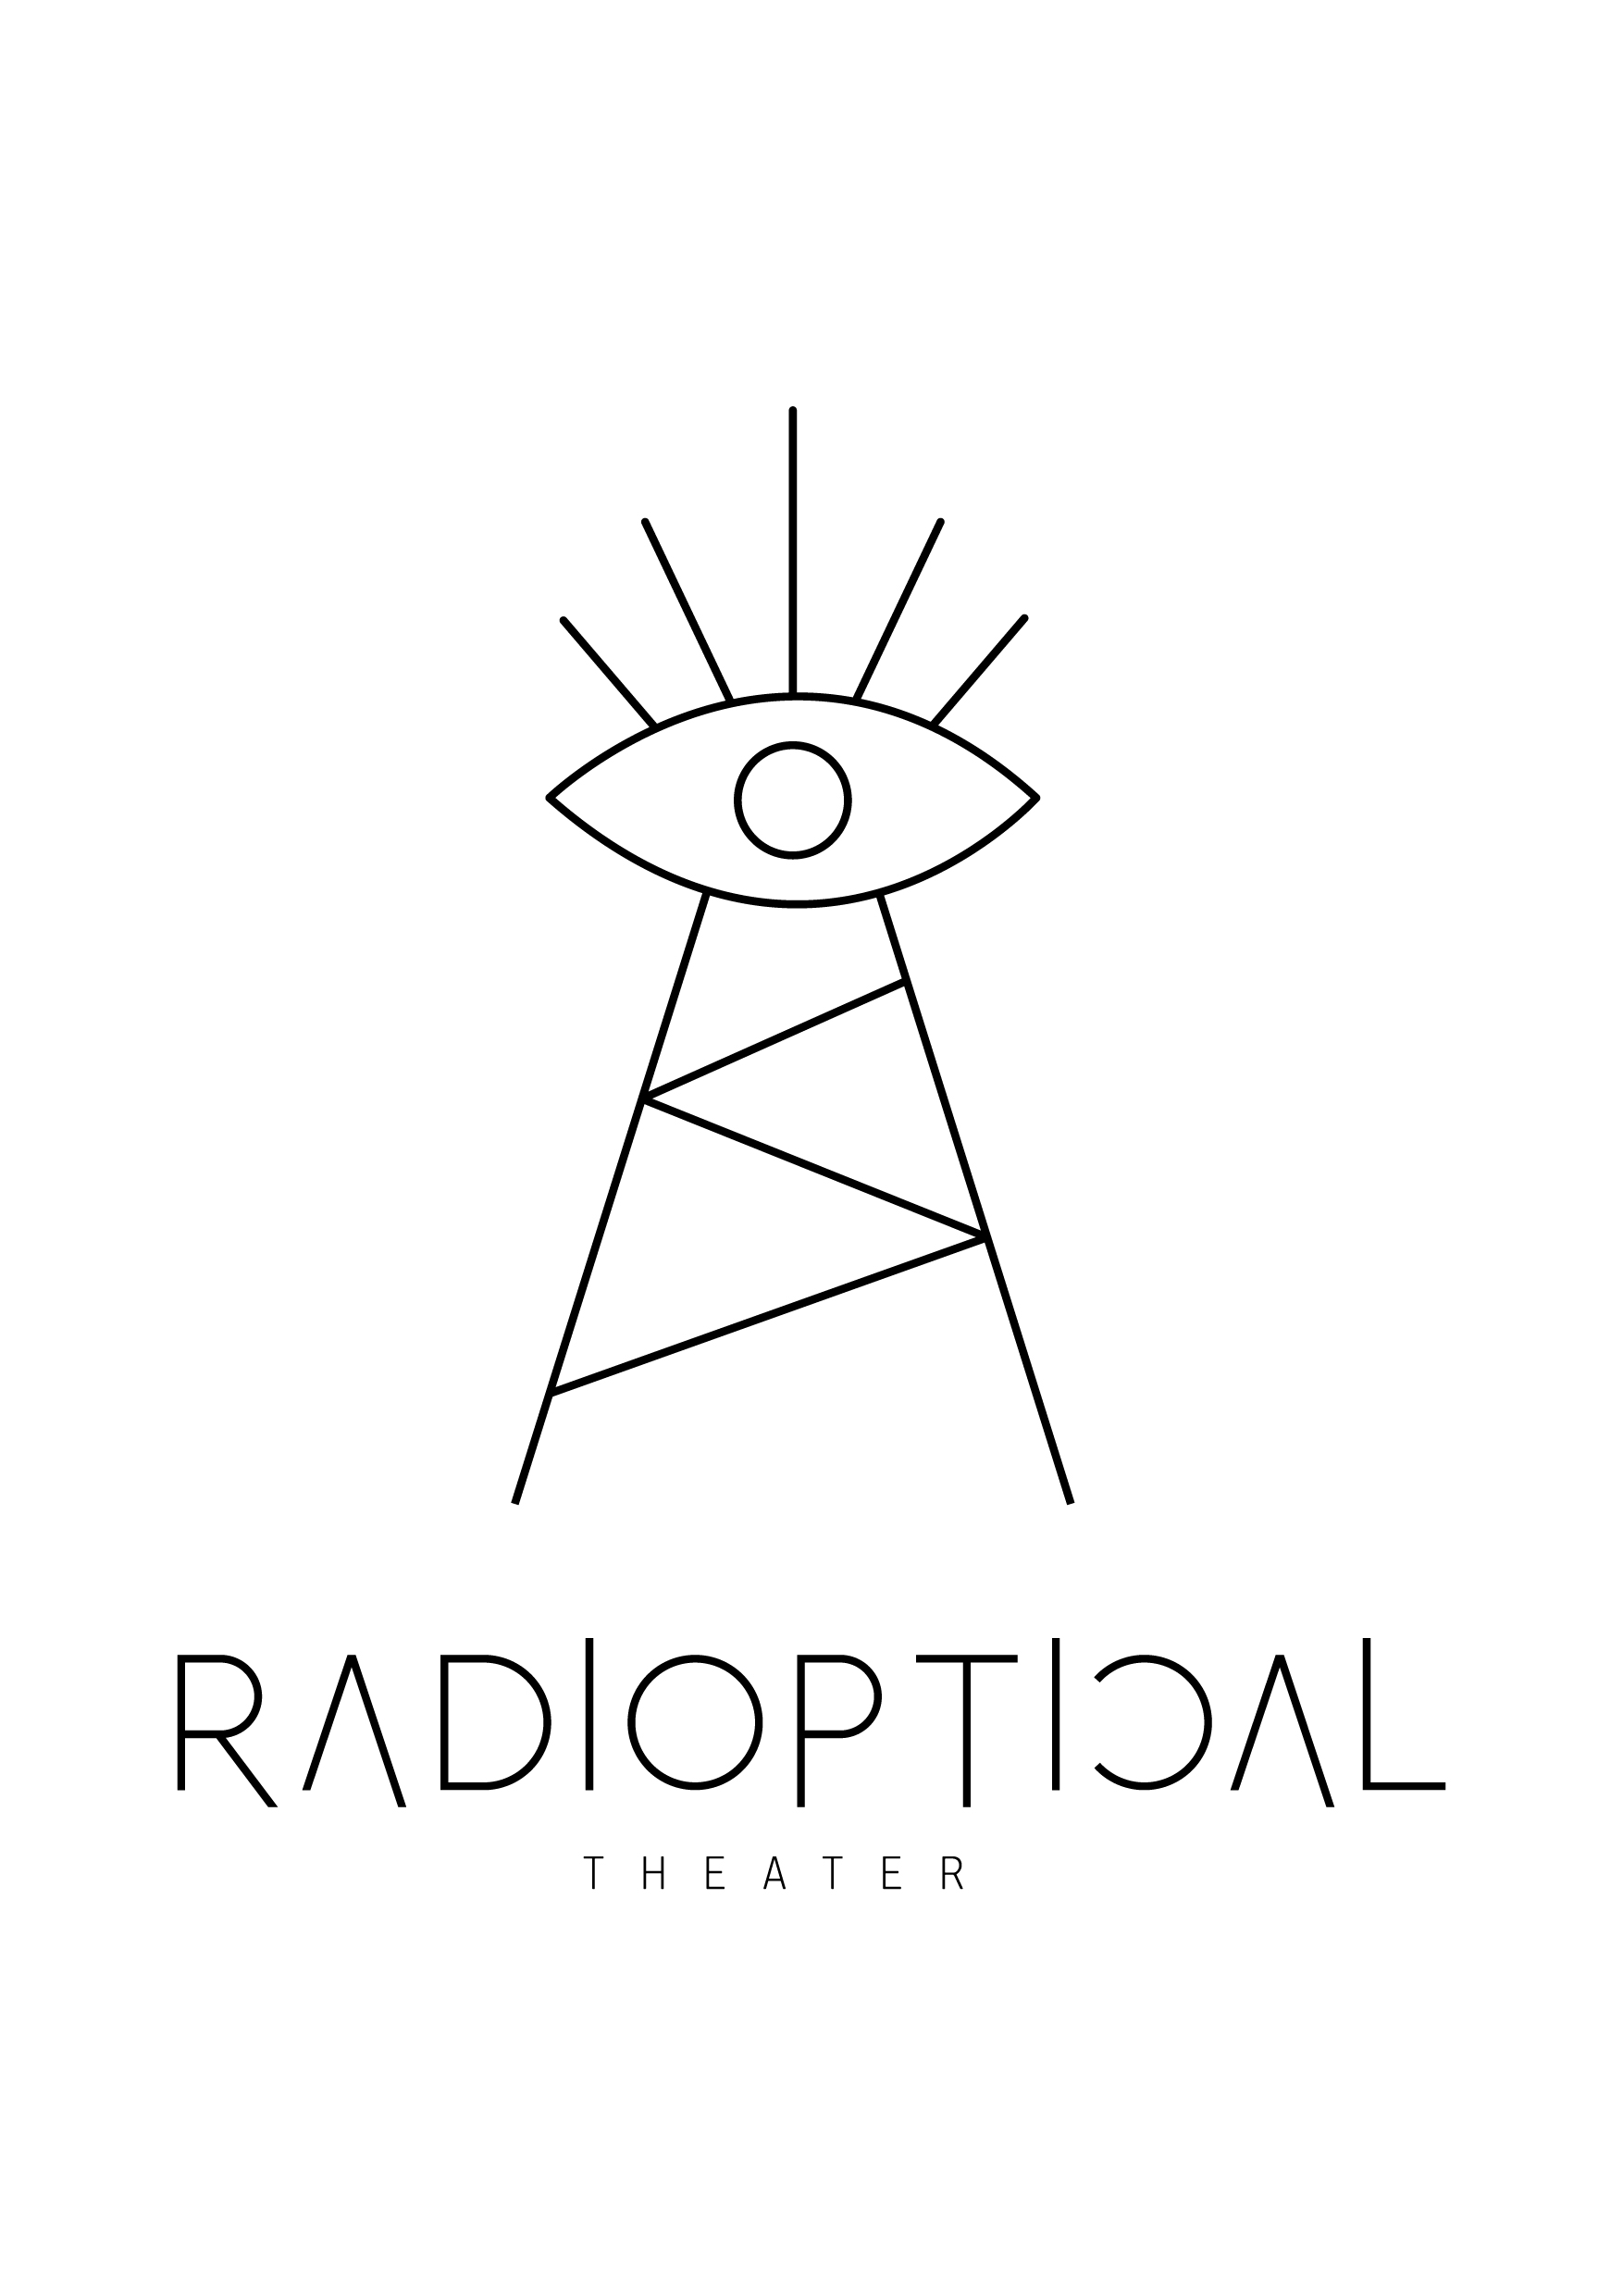 FINAL_BLACK_RADIOPTICAL_LOGO